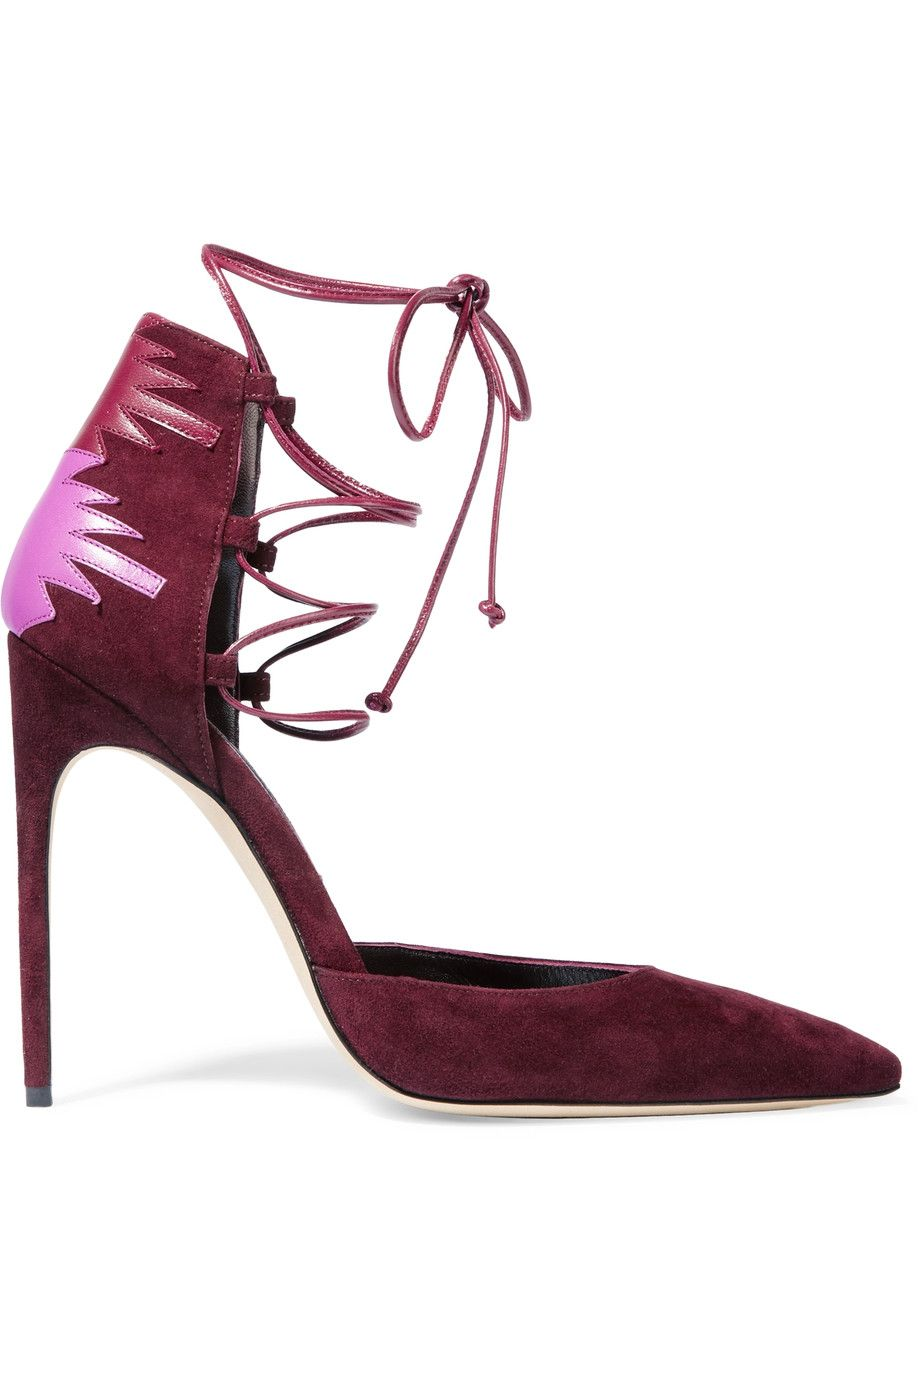 Shop on-sale Brian Atwood Maka lace-up leather-paneled suede pumps.